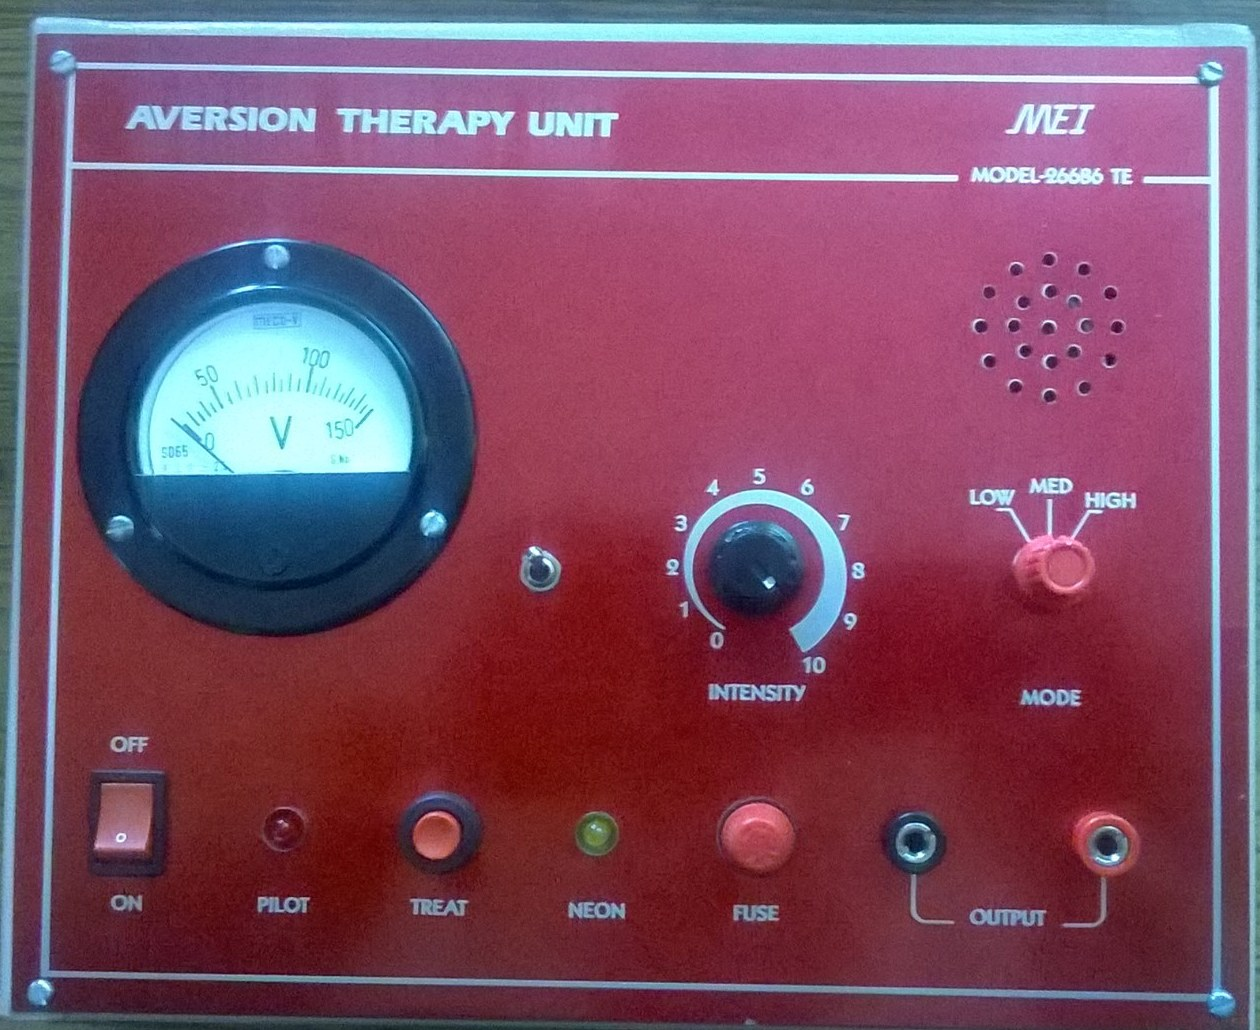 Aversion Therapy Equipment is an Instrument used to treat the addicts of Alcohol, Smoking, Drugs, Sexual deviations etc.